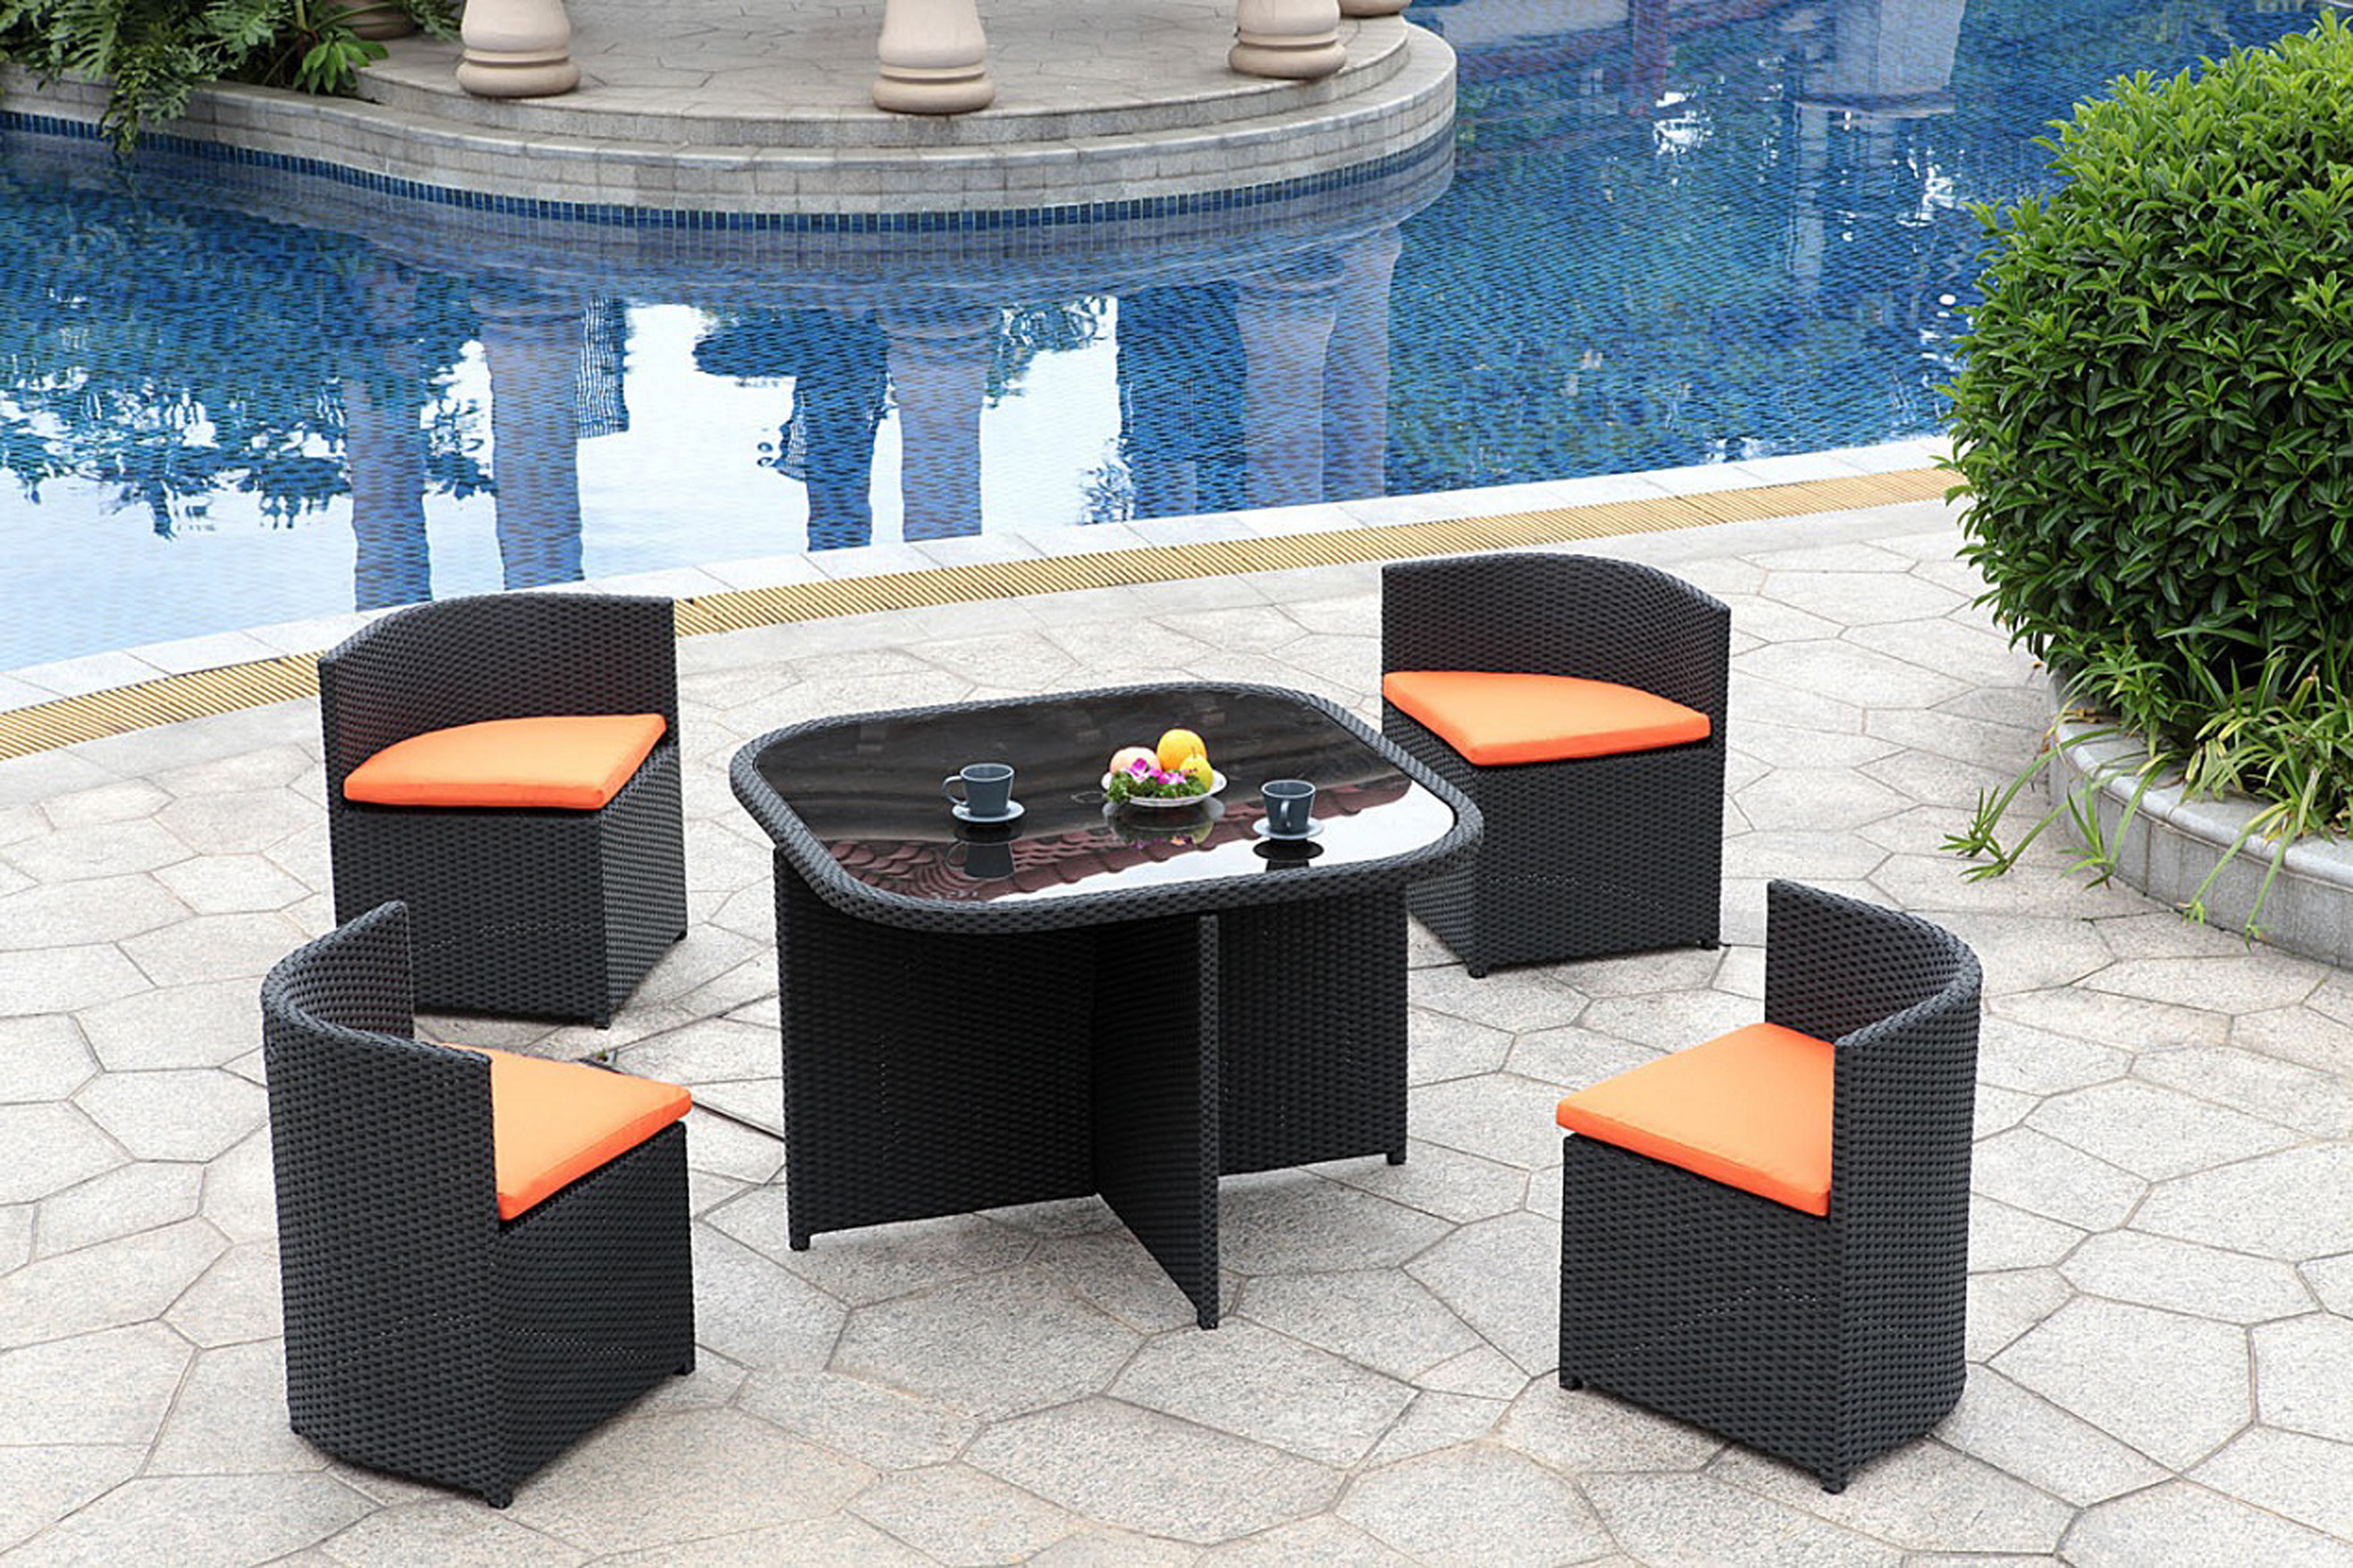 Amazing Modern Outdoor Furniture Design Idea With Glass Top Dining Table With Black Base And Black Chairs With Orange Seat Cushions Affordable Modern Outdoor Furniture Design Ideas (View 21 of 28)